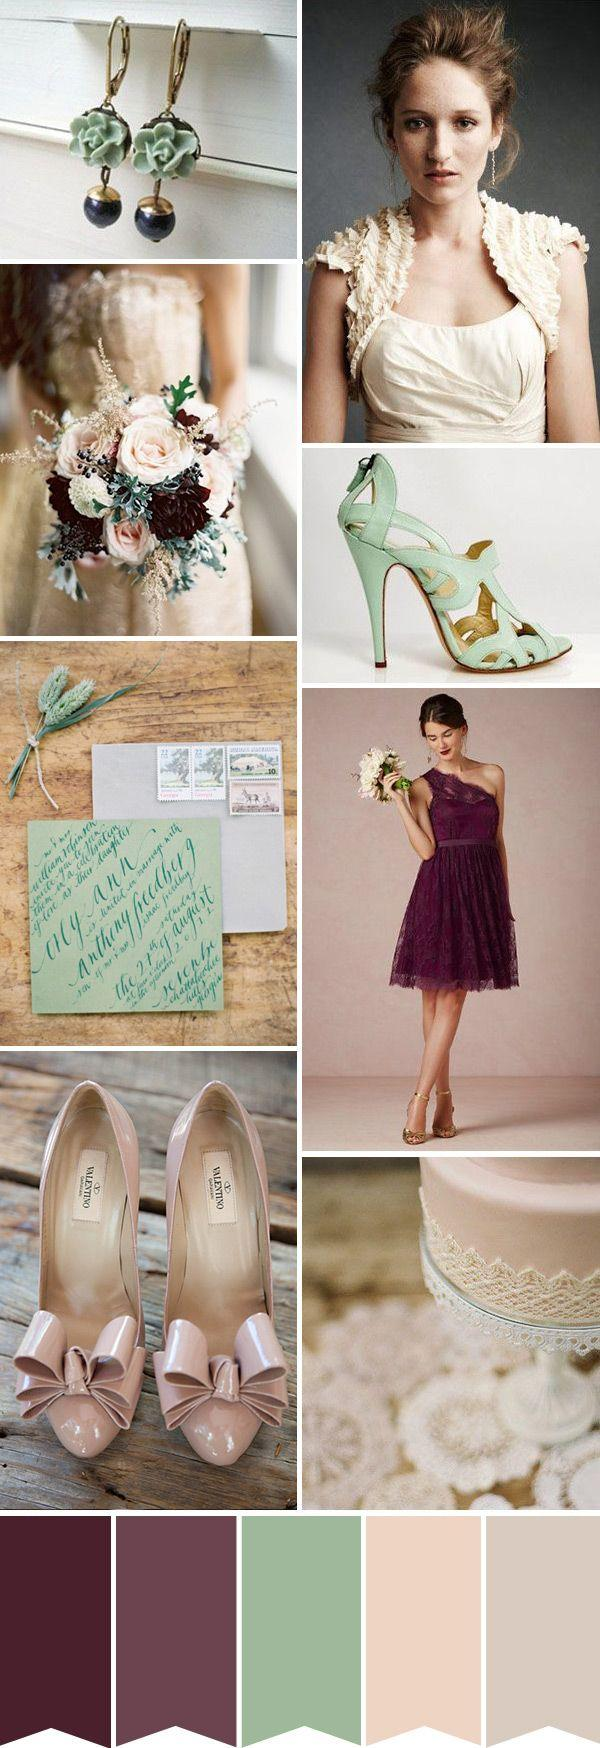 plum and seafoam green wedding color ideas